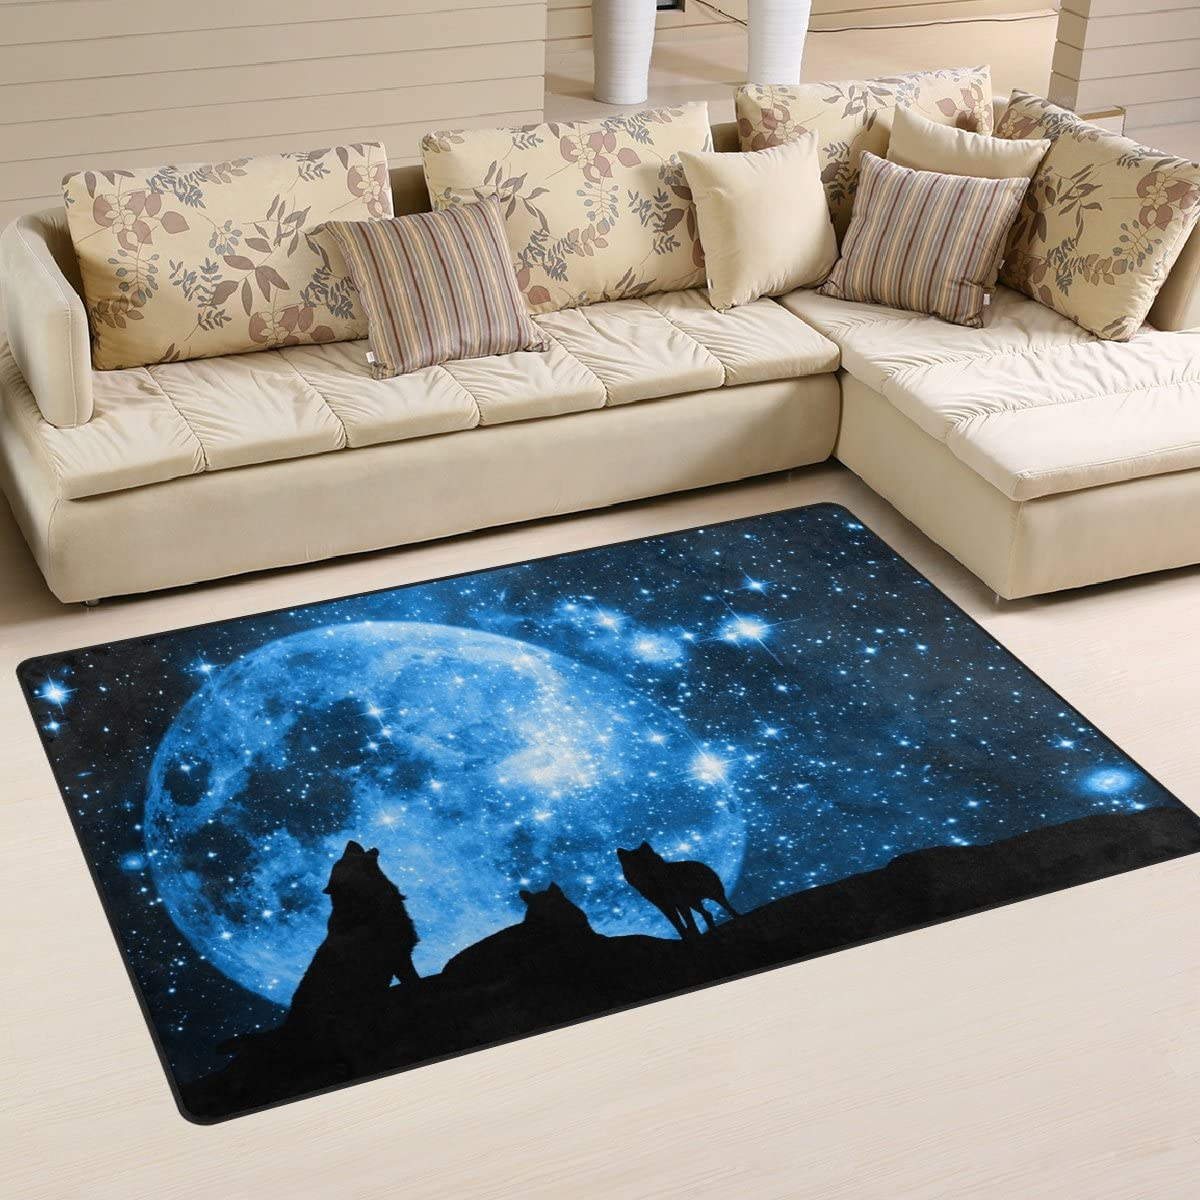 WOZO Starry Night Wolf Full Moon Area Rug Rugs Non-Slip Floor Mat Doormats Living Dining Room Bedroom Dorm 60 x 39 inches inches Home Decor